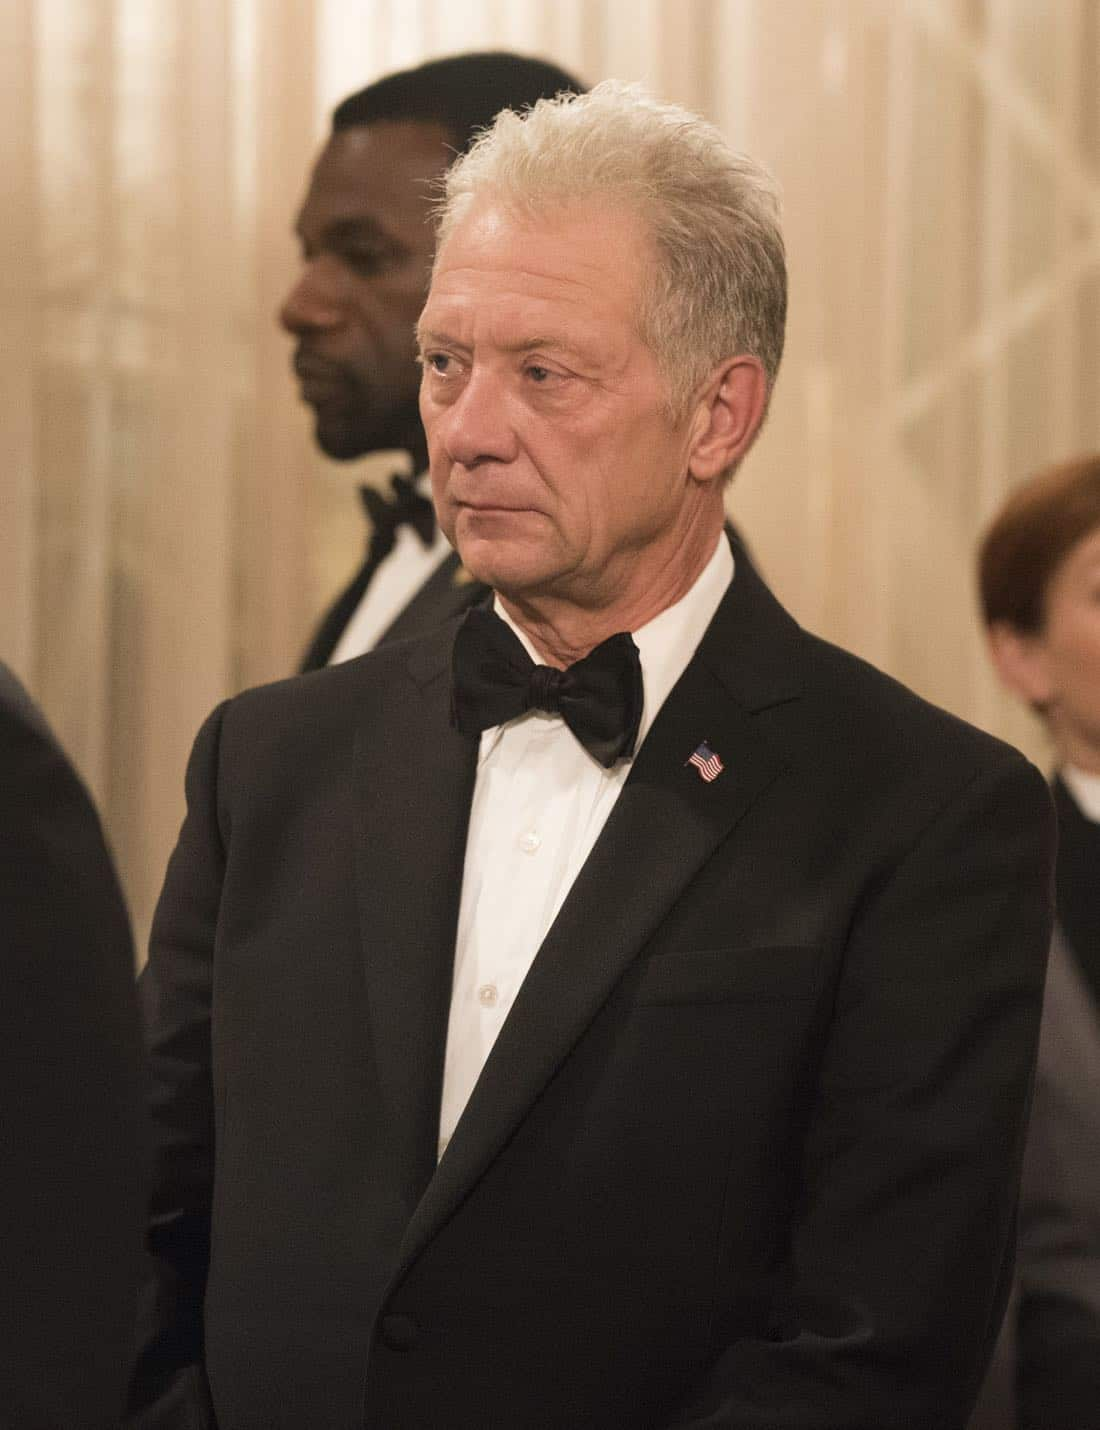 """SCANDAL - """"Pressing the Flesh"""" - President Mellie Grant hosts a state dinner for President Rashad of Bashran in a first step toward peace in the Middle East, and in case Mellie's charm alone doesn't work, Olivia secretly puts Jake to work so that they are armed with a back-up plan. Meanwhile, the team at Quinn Perkins & Associates attends the party in hopes to gain more high-profile clientele, on """"Scandal,"""" airing THURSDAY, OCTOBER 12 (9:00-10:00 p.m. EDT), on The ABC Television Network. (ABC/Mitch Haaseth) JEFF PERRY"""